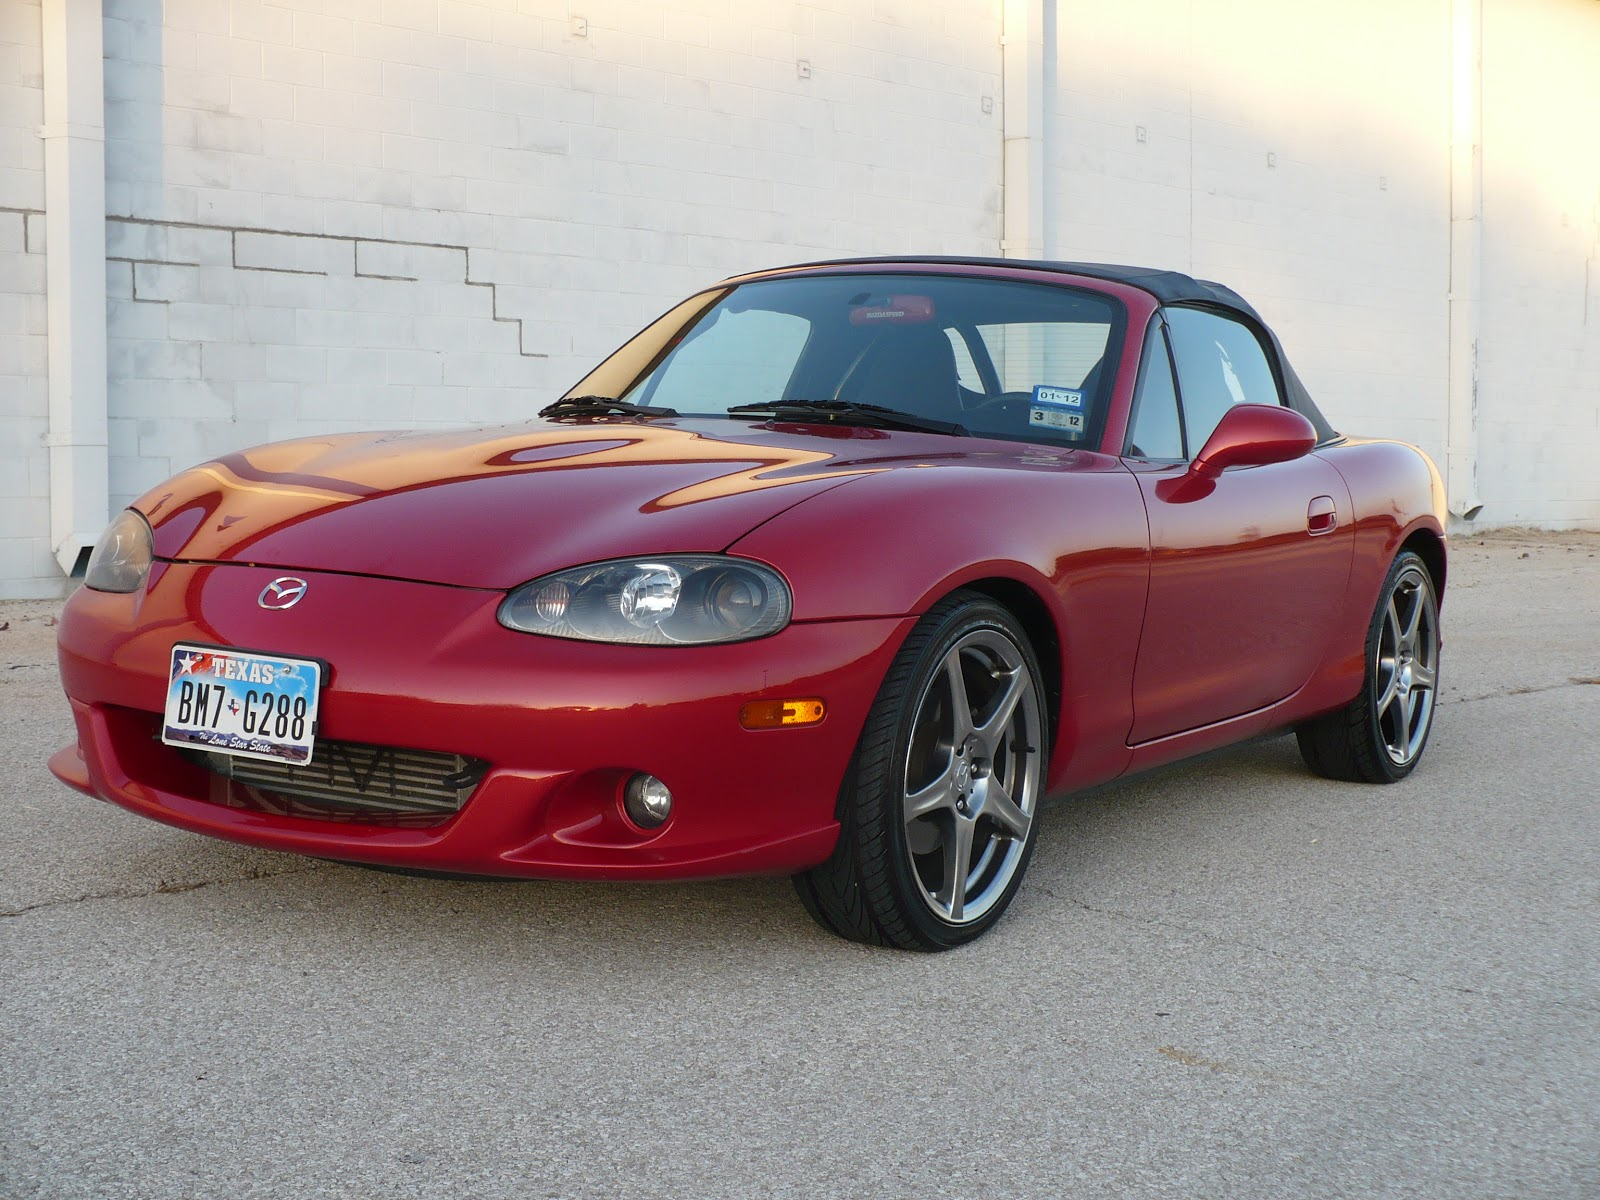 yaw moment racing for sale low mileage 2004 mazdaspeed mx 5 factory turbocharged miata. Black Bedroom Furniture Sets. Home Design Ideas